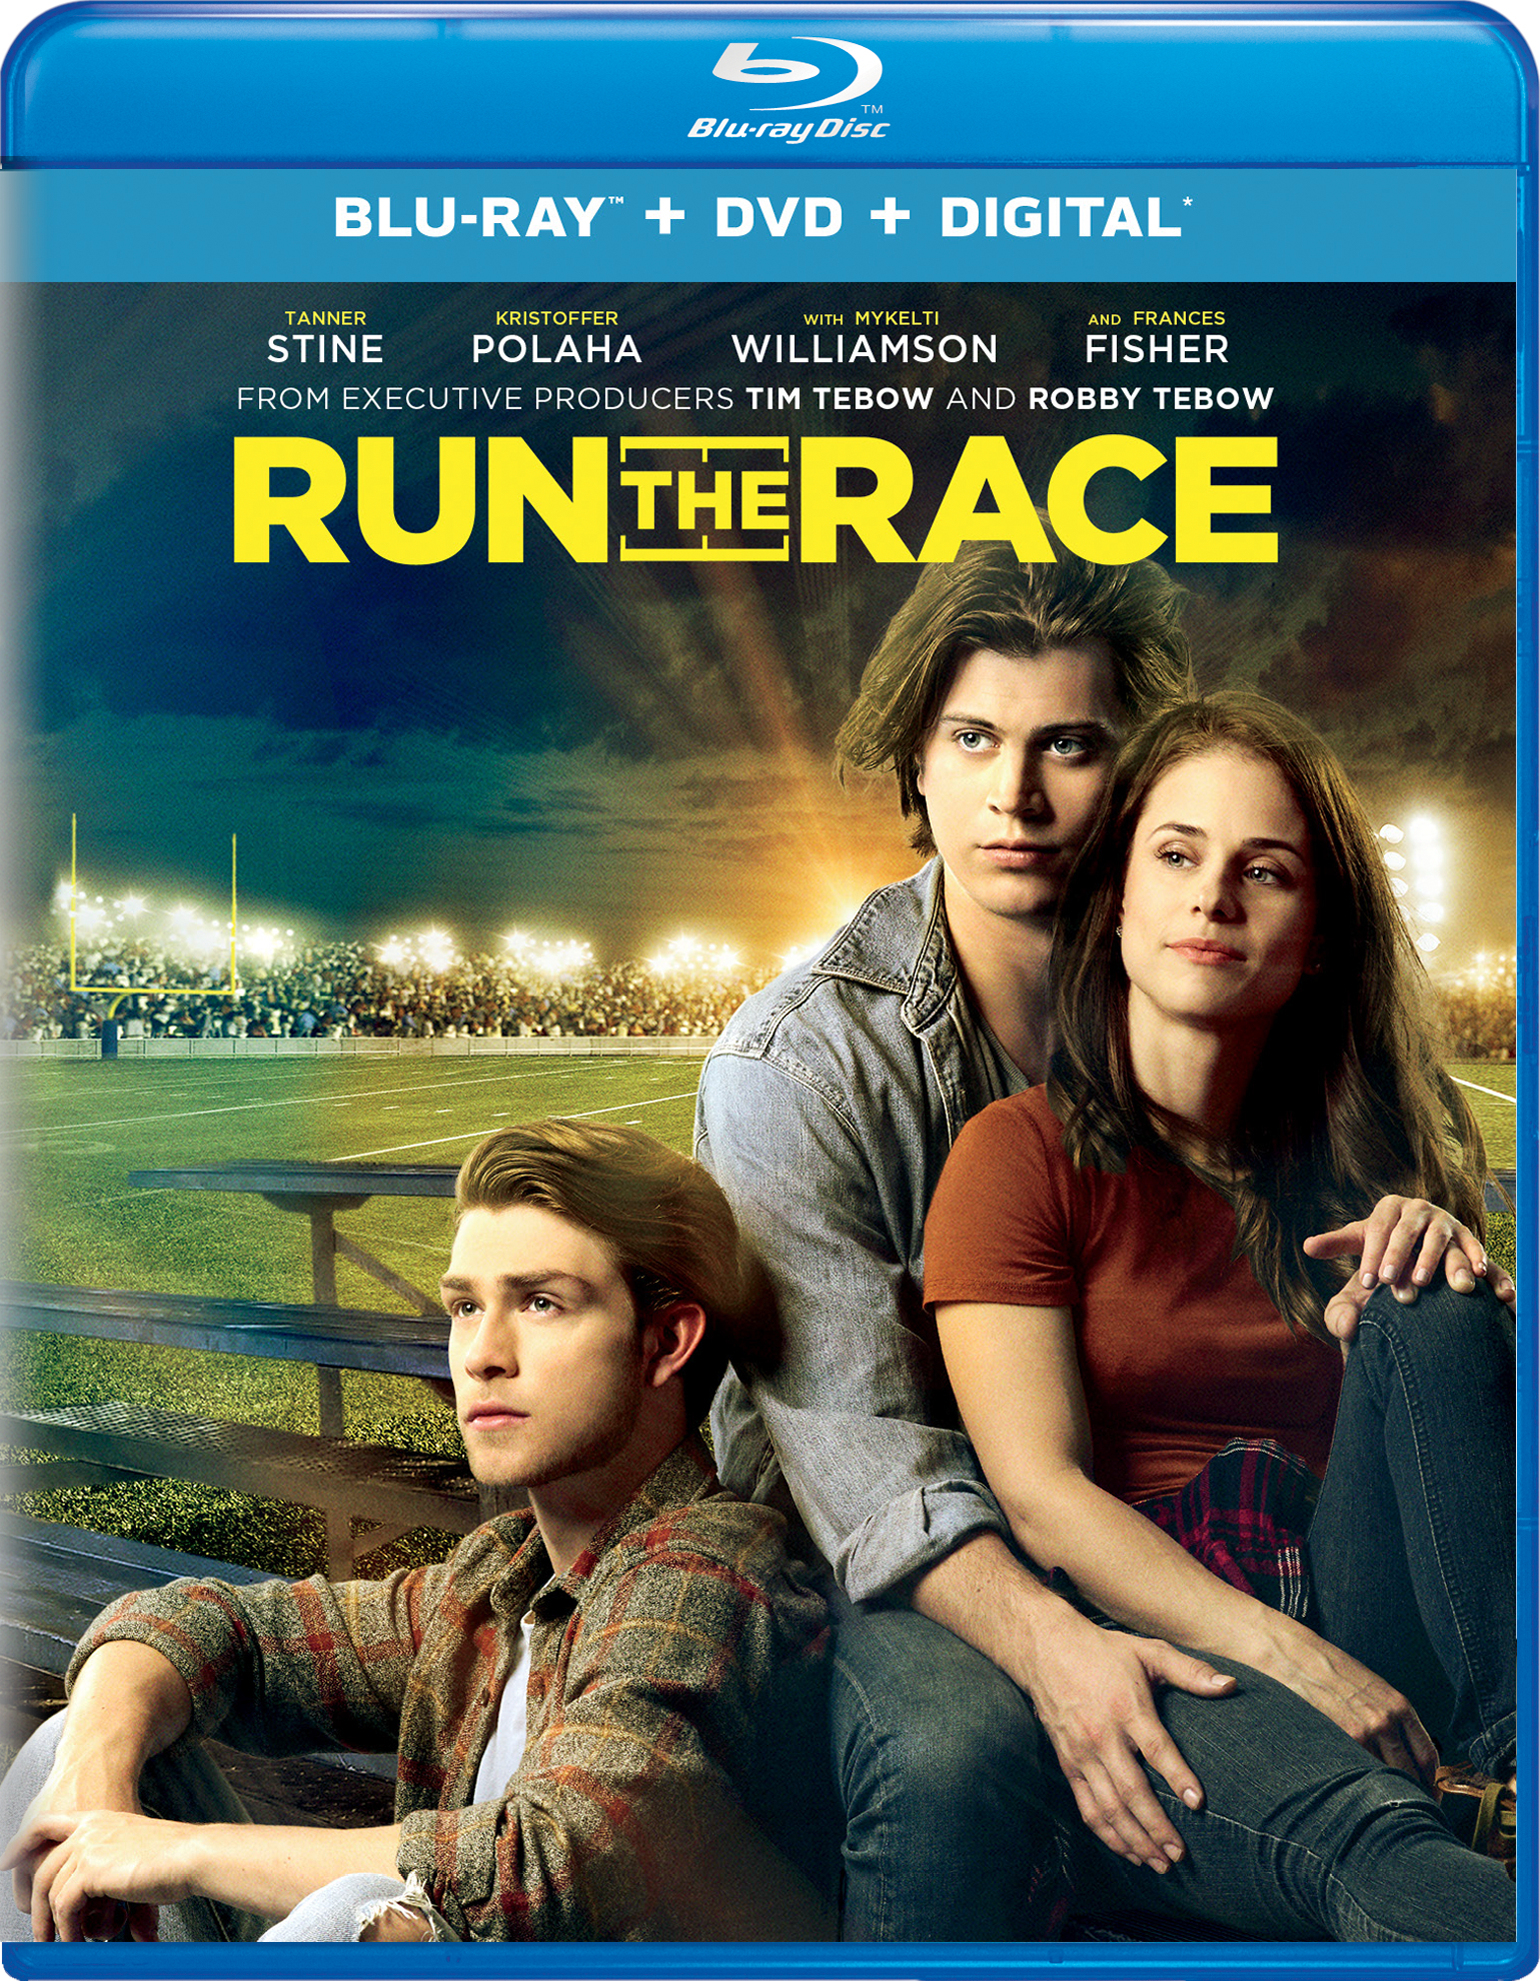 Run the Race (Blu-ray)(Region A)(Pre-order / Jun 18)